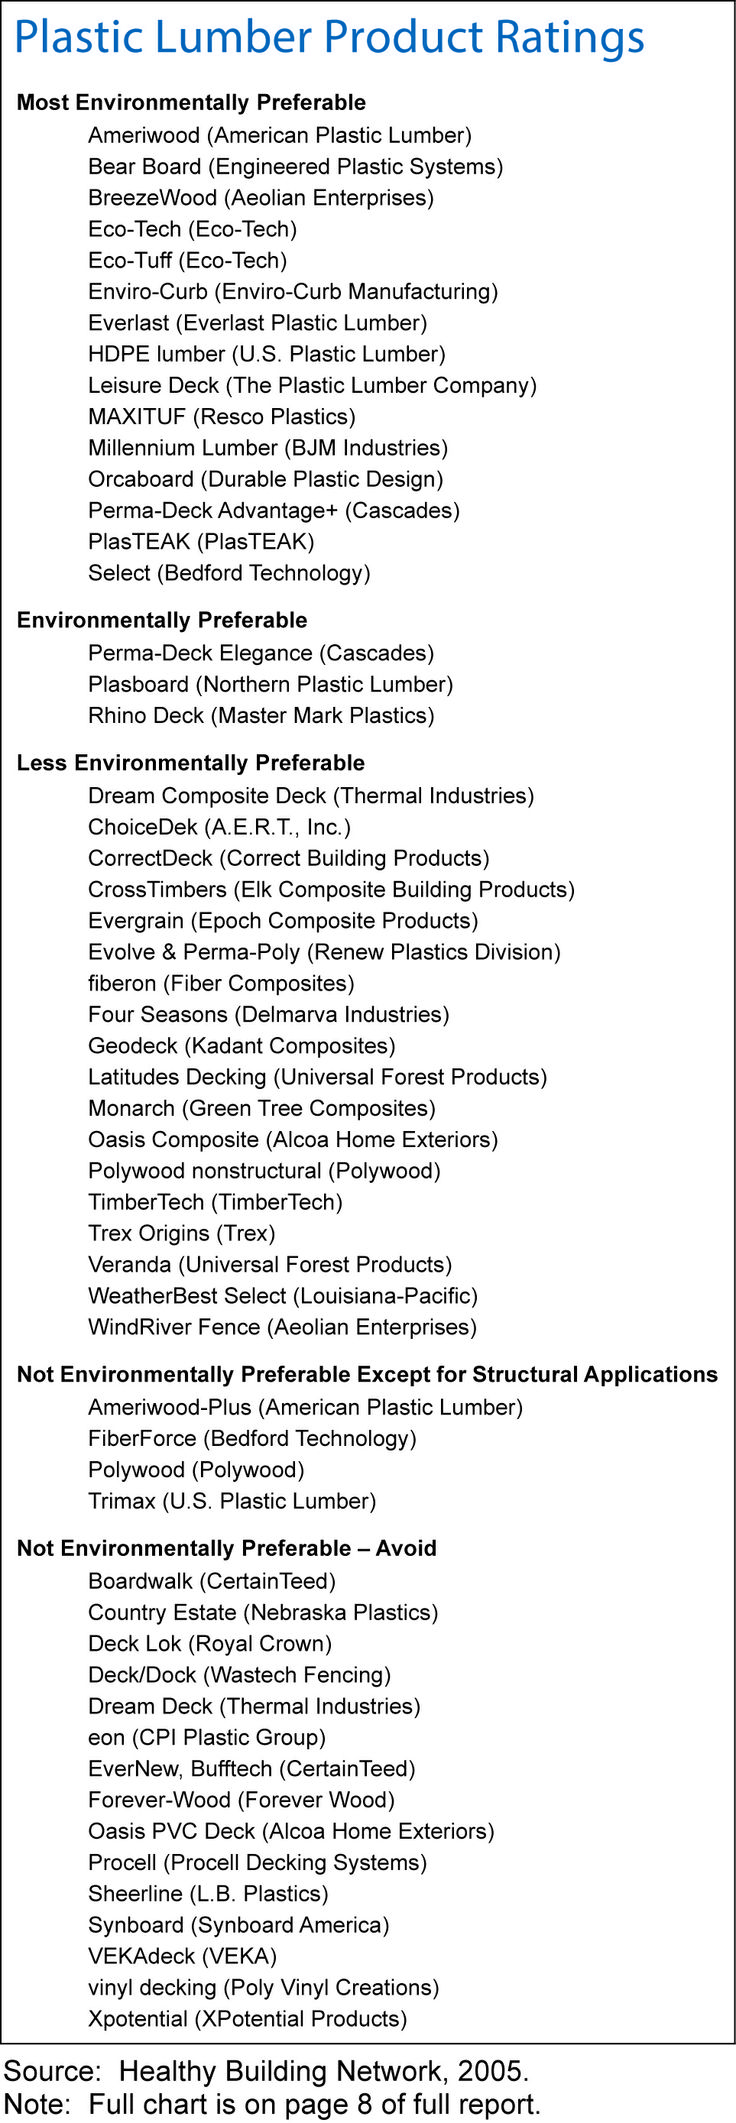 As the snow melts you might be thinking about that sexy deck you want to build in your back yard. Well this might be a great resource for ya. I'm a fan of the durability and recycled content of plastic lumber, but they are not all created equal. Here's a great list to get you started. Full report here http://www.healthybuilding.net/plastic_lumber.html